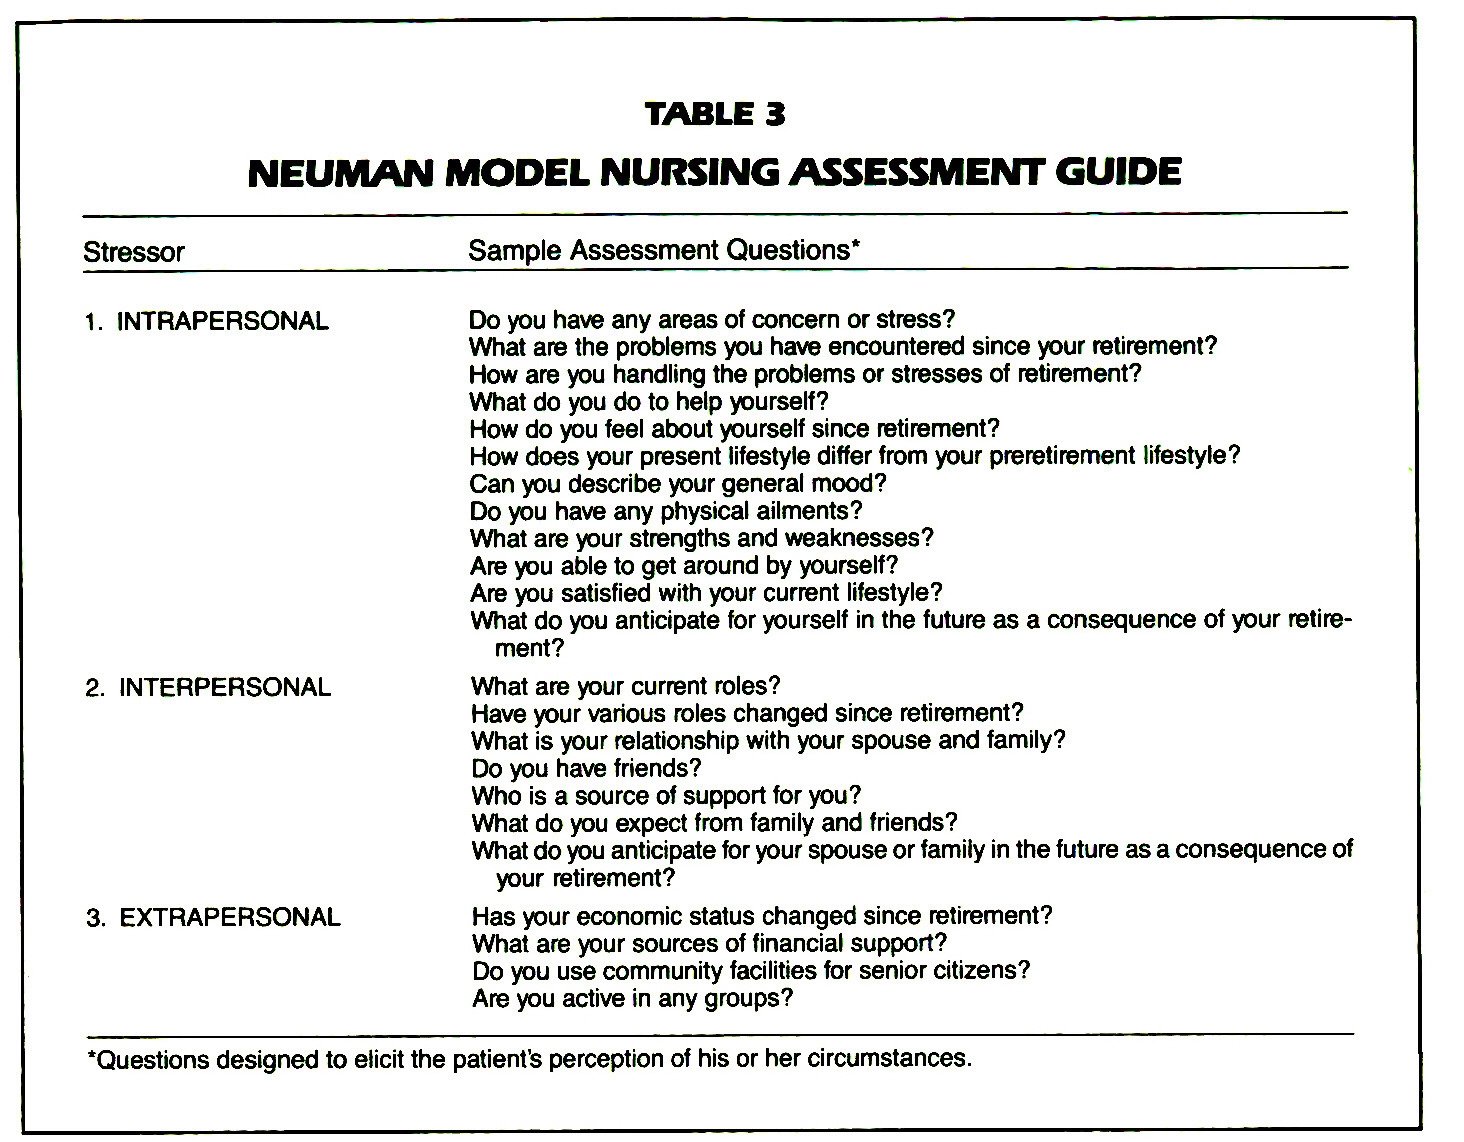 assessing delivery of nursing care